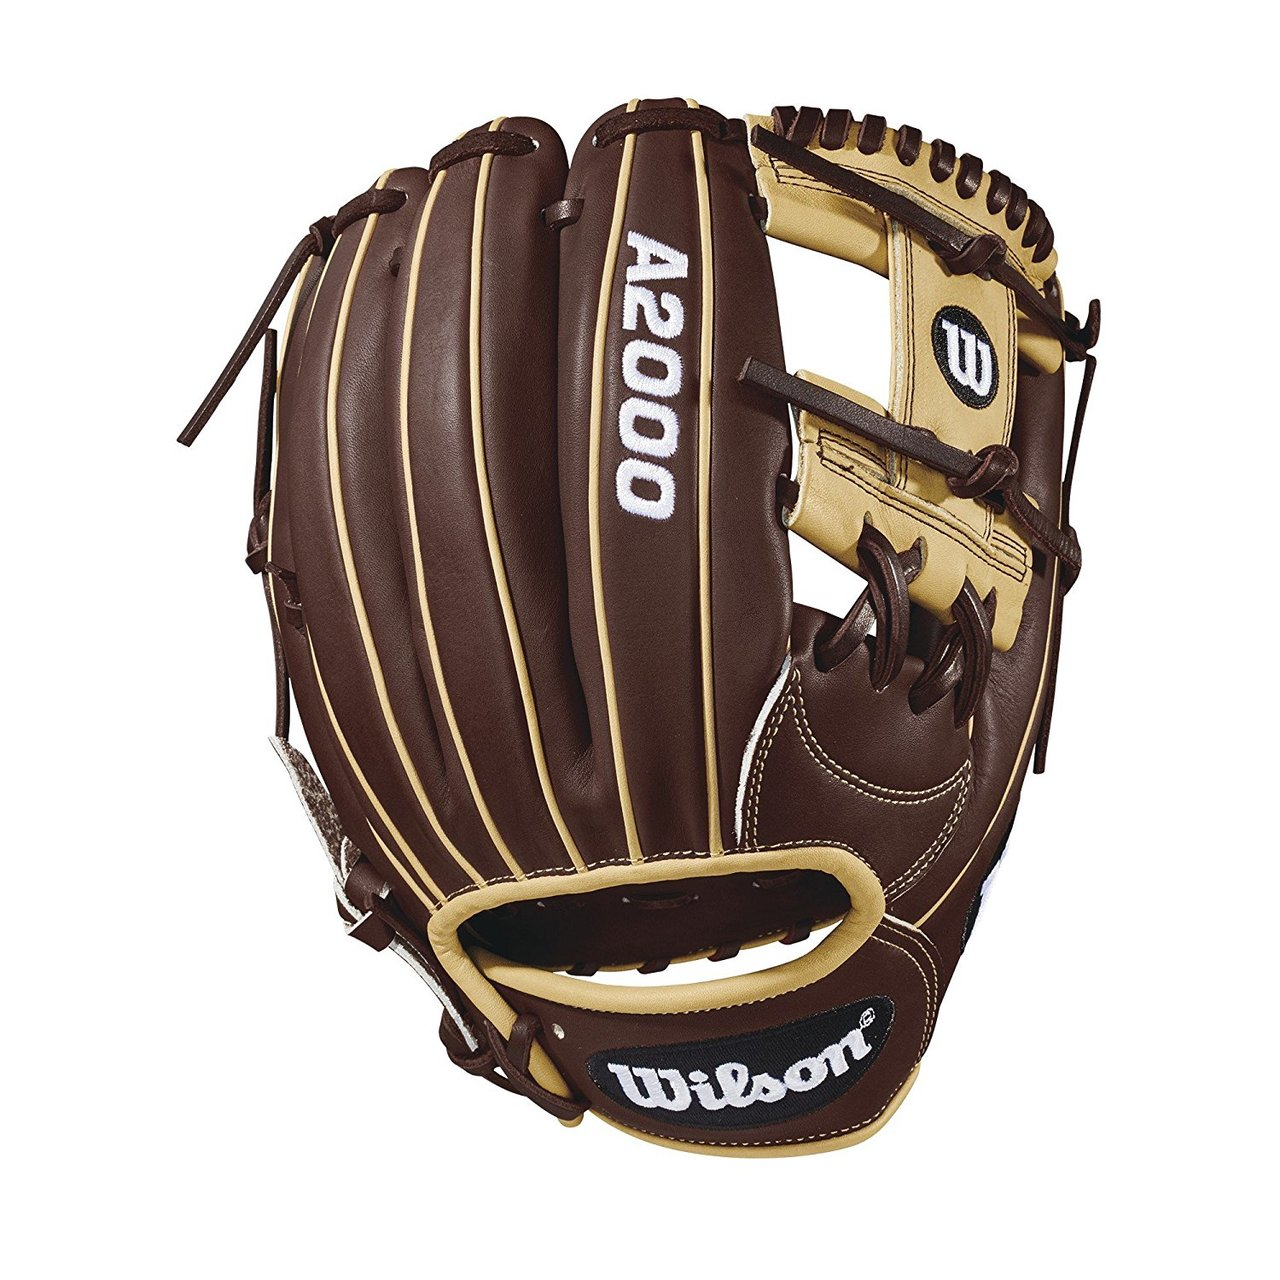 wilson-2018-a2000-1787-infield-baseball-glove-right-hand-throw-11-75 WTA20RB181787-RightHandThrow Wilson 887768614713 Constantly improving patterns. Materials that perform. Dependable construction. The evolution of